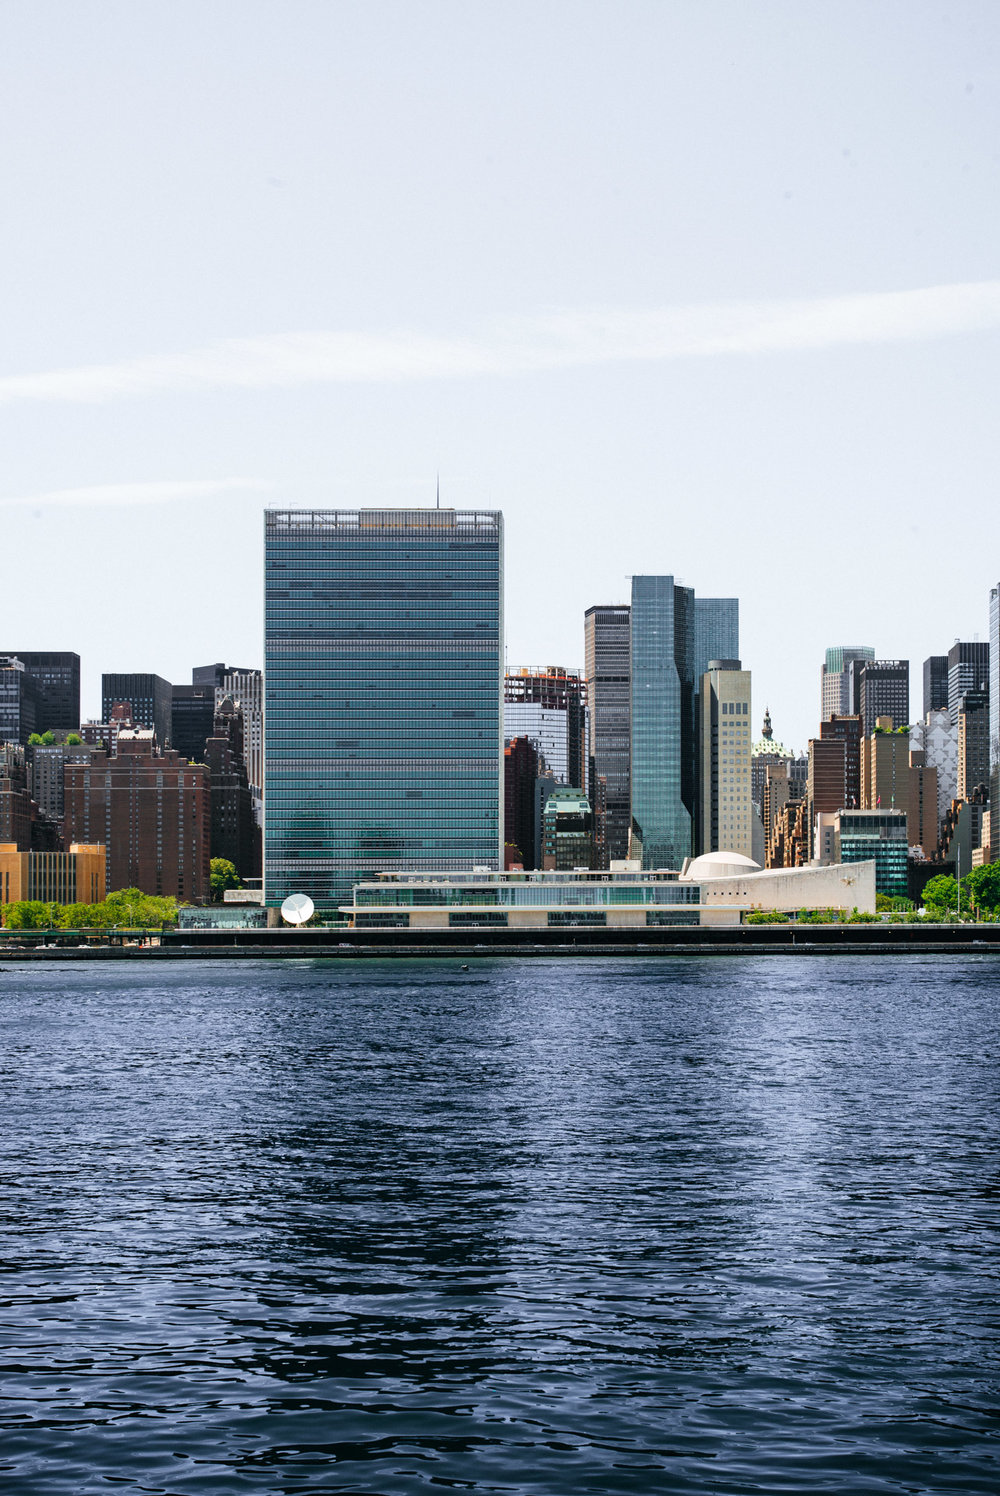 United Nations Headquarters from Long Island City, Queens